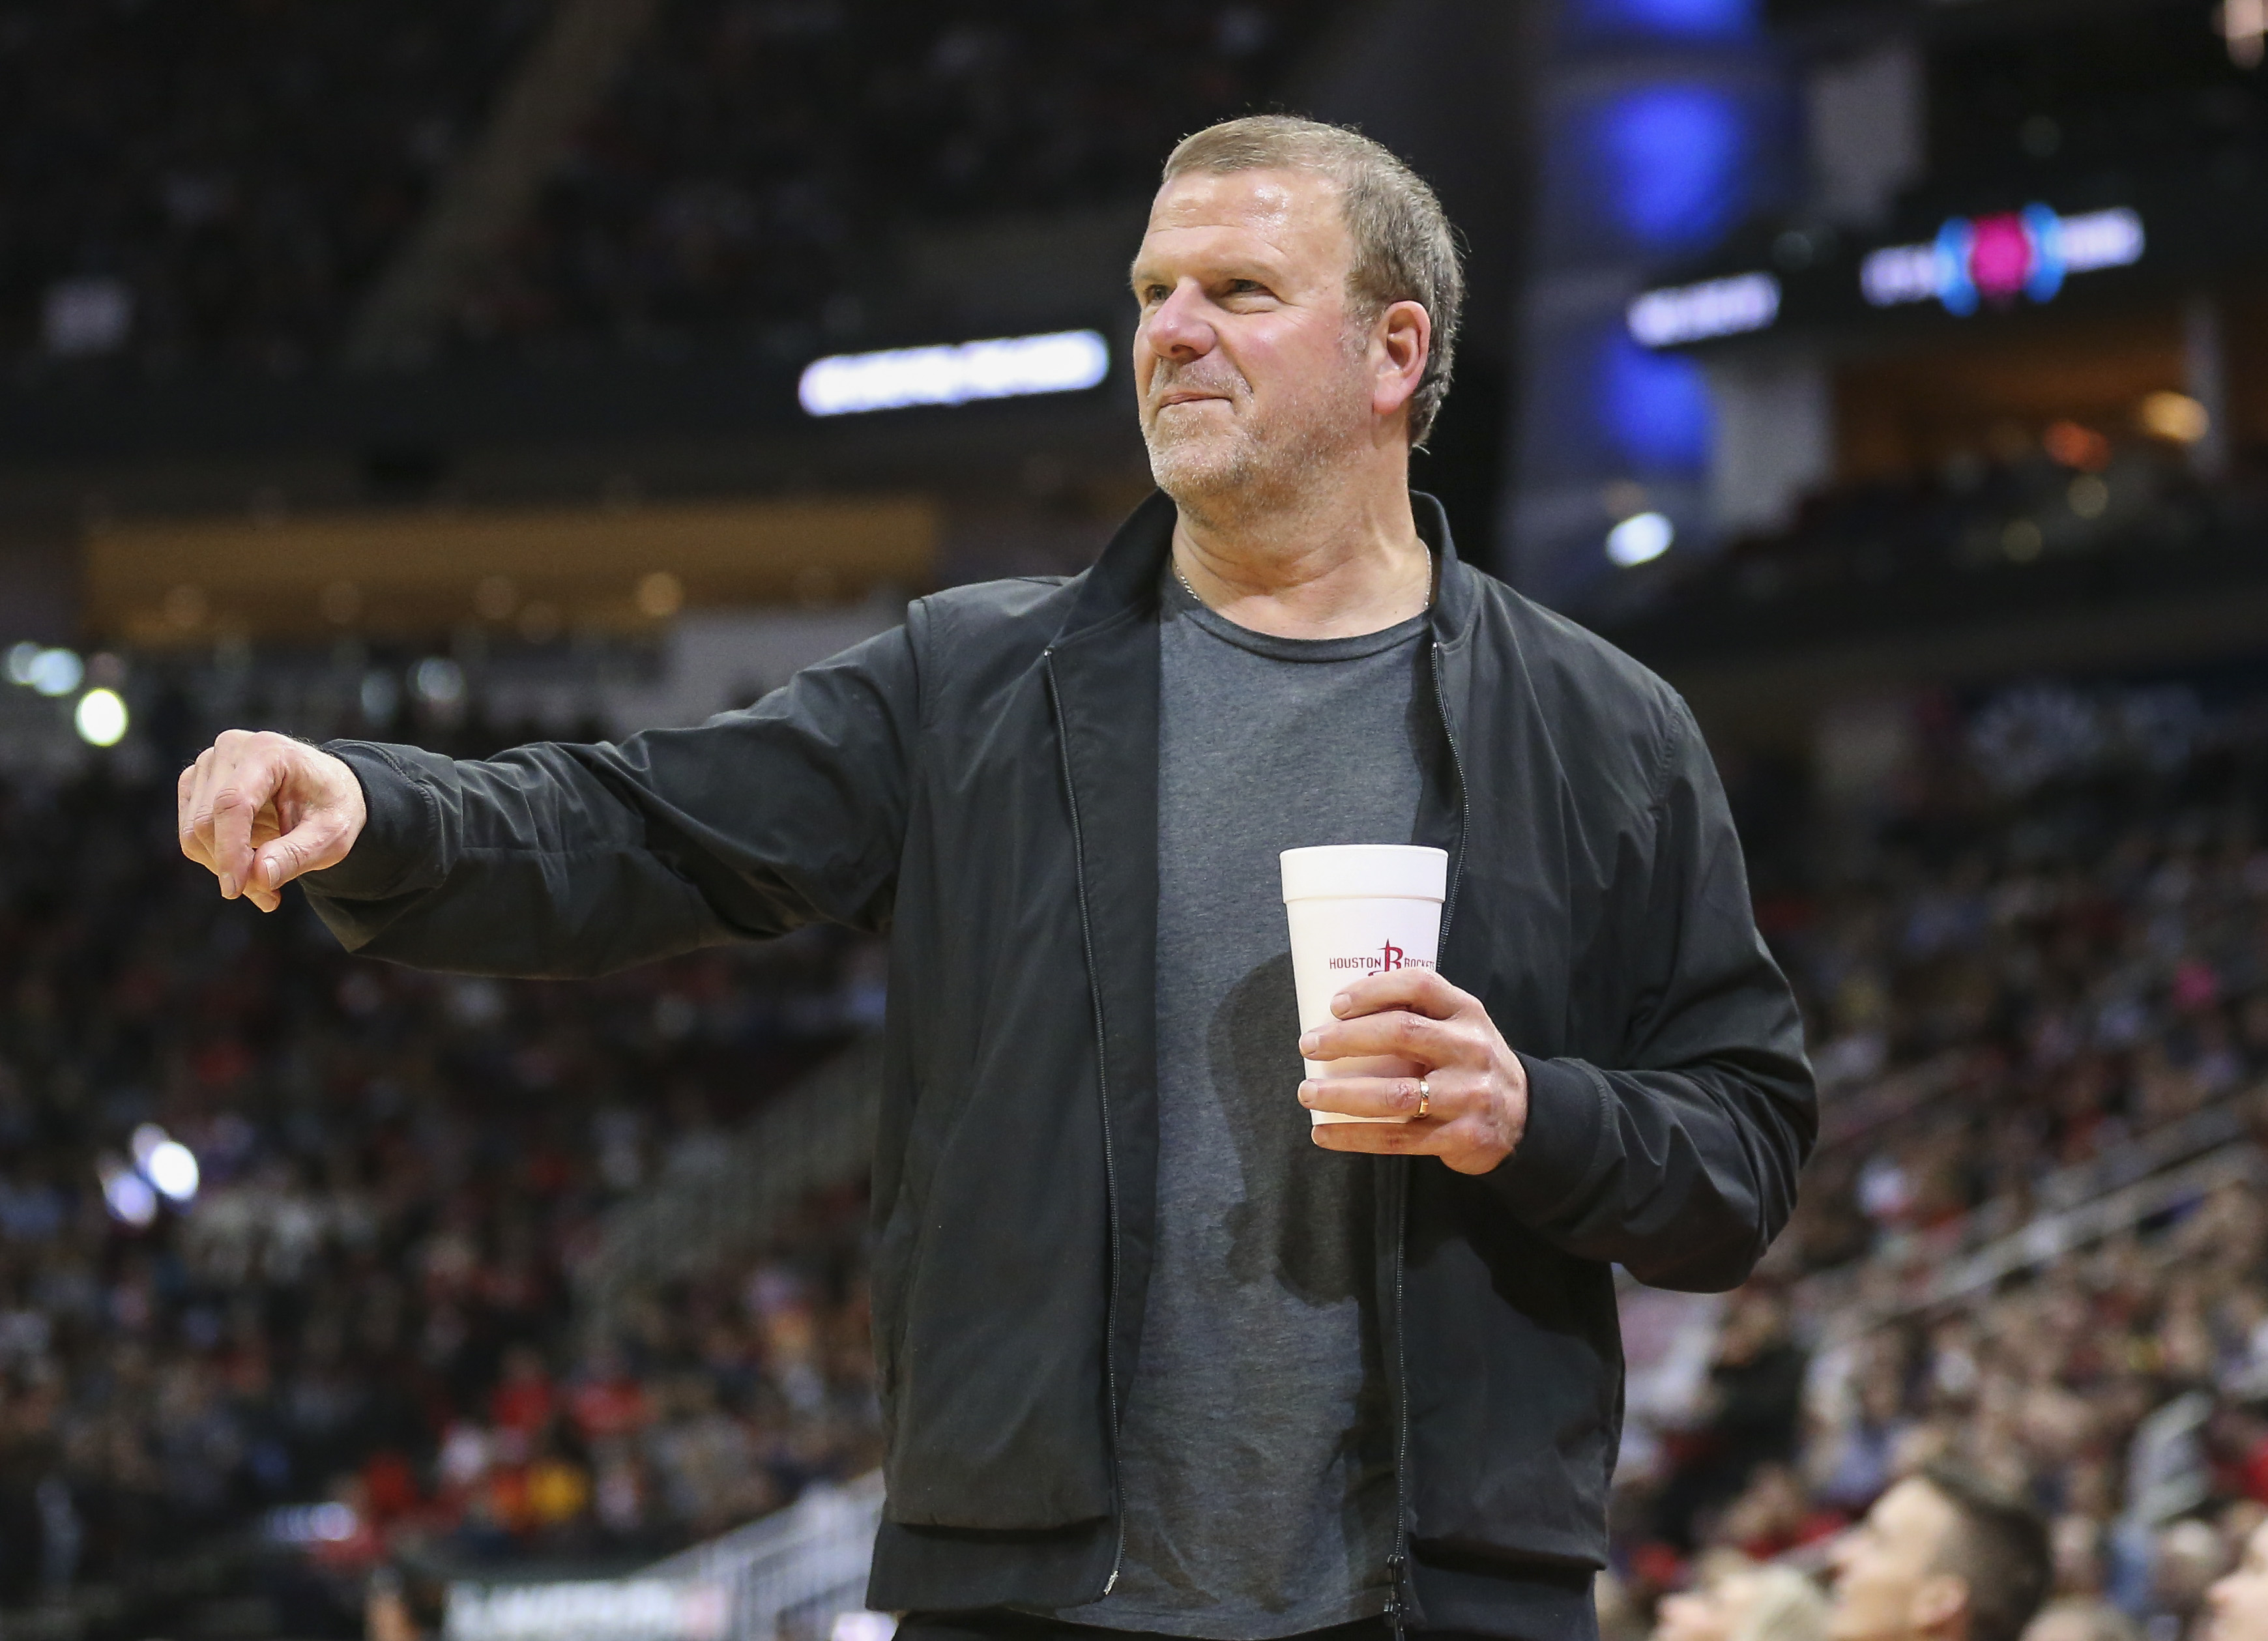 Rockets owner Tilman Fertitta believes protesters are what 'makes America great'